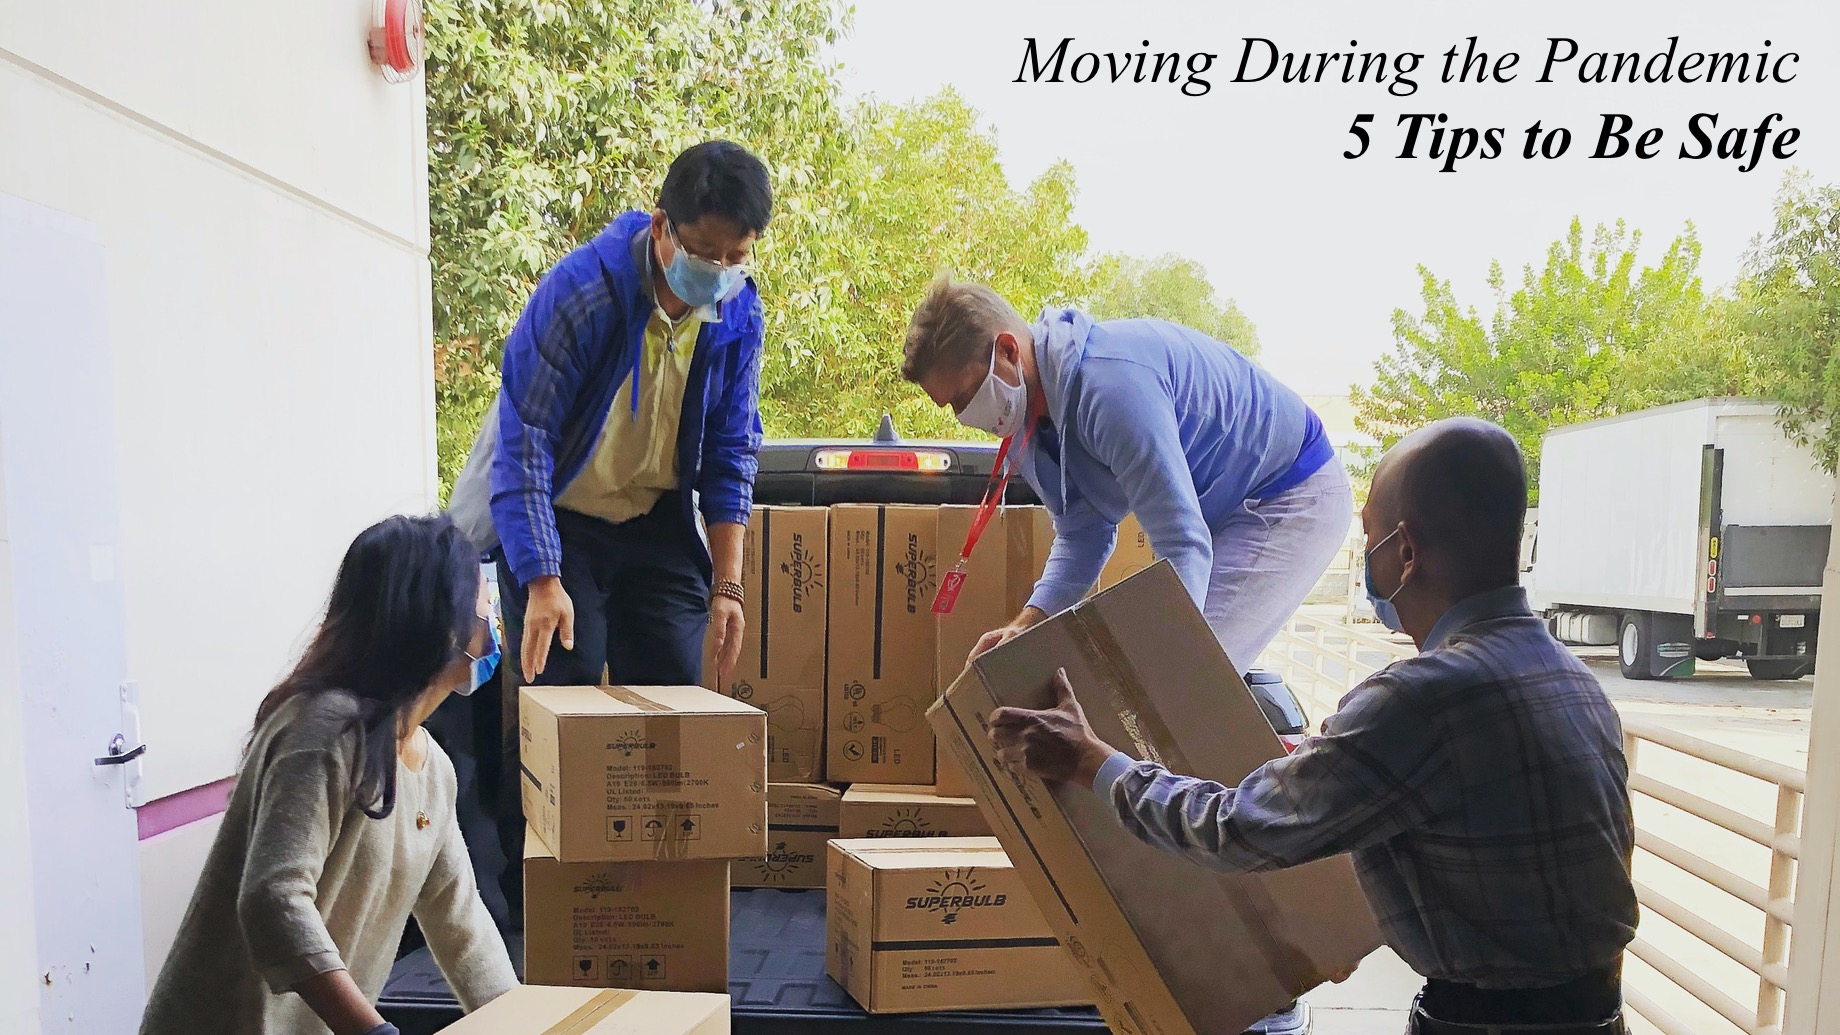 Moving During the Pandemic - 5 Tips to Be Safe